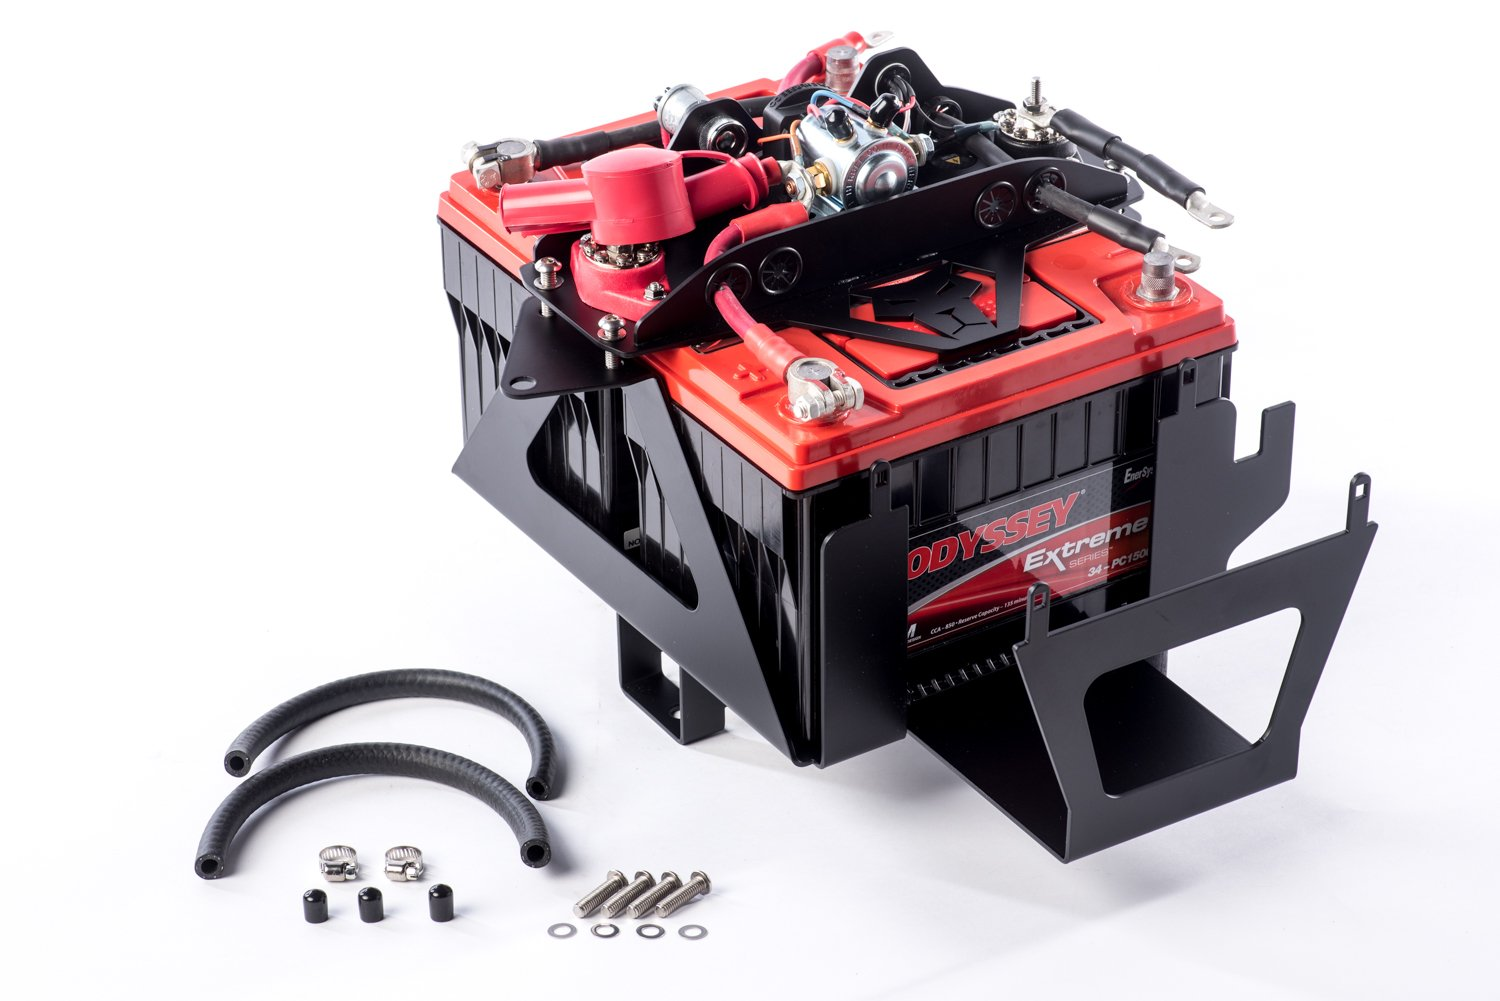 Genesis Offroad Jeep JK Dual Battery Kit with 200 AMP Isolator for 2012+